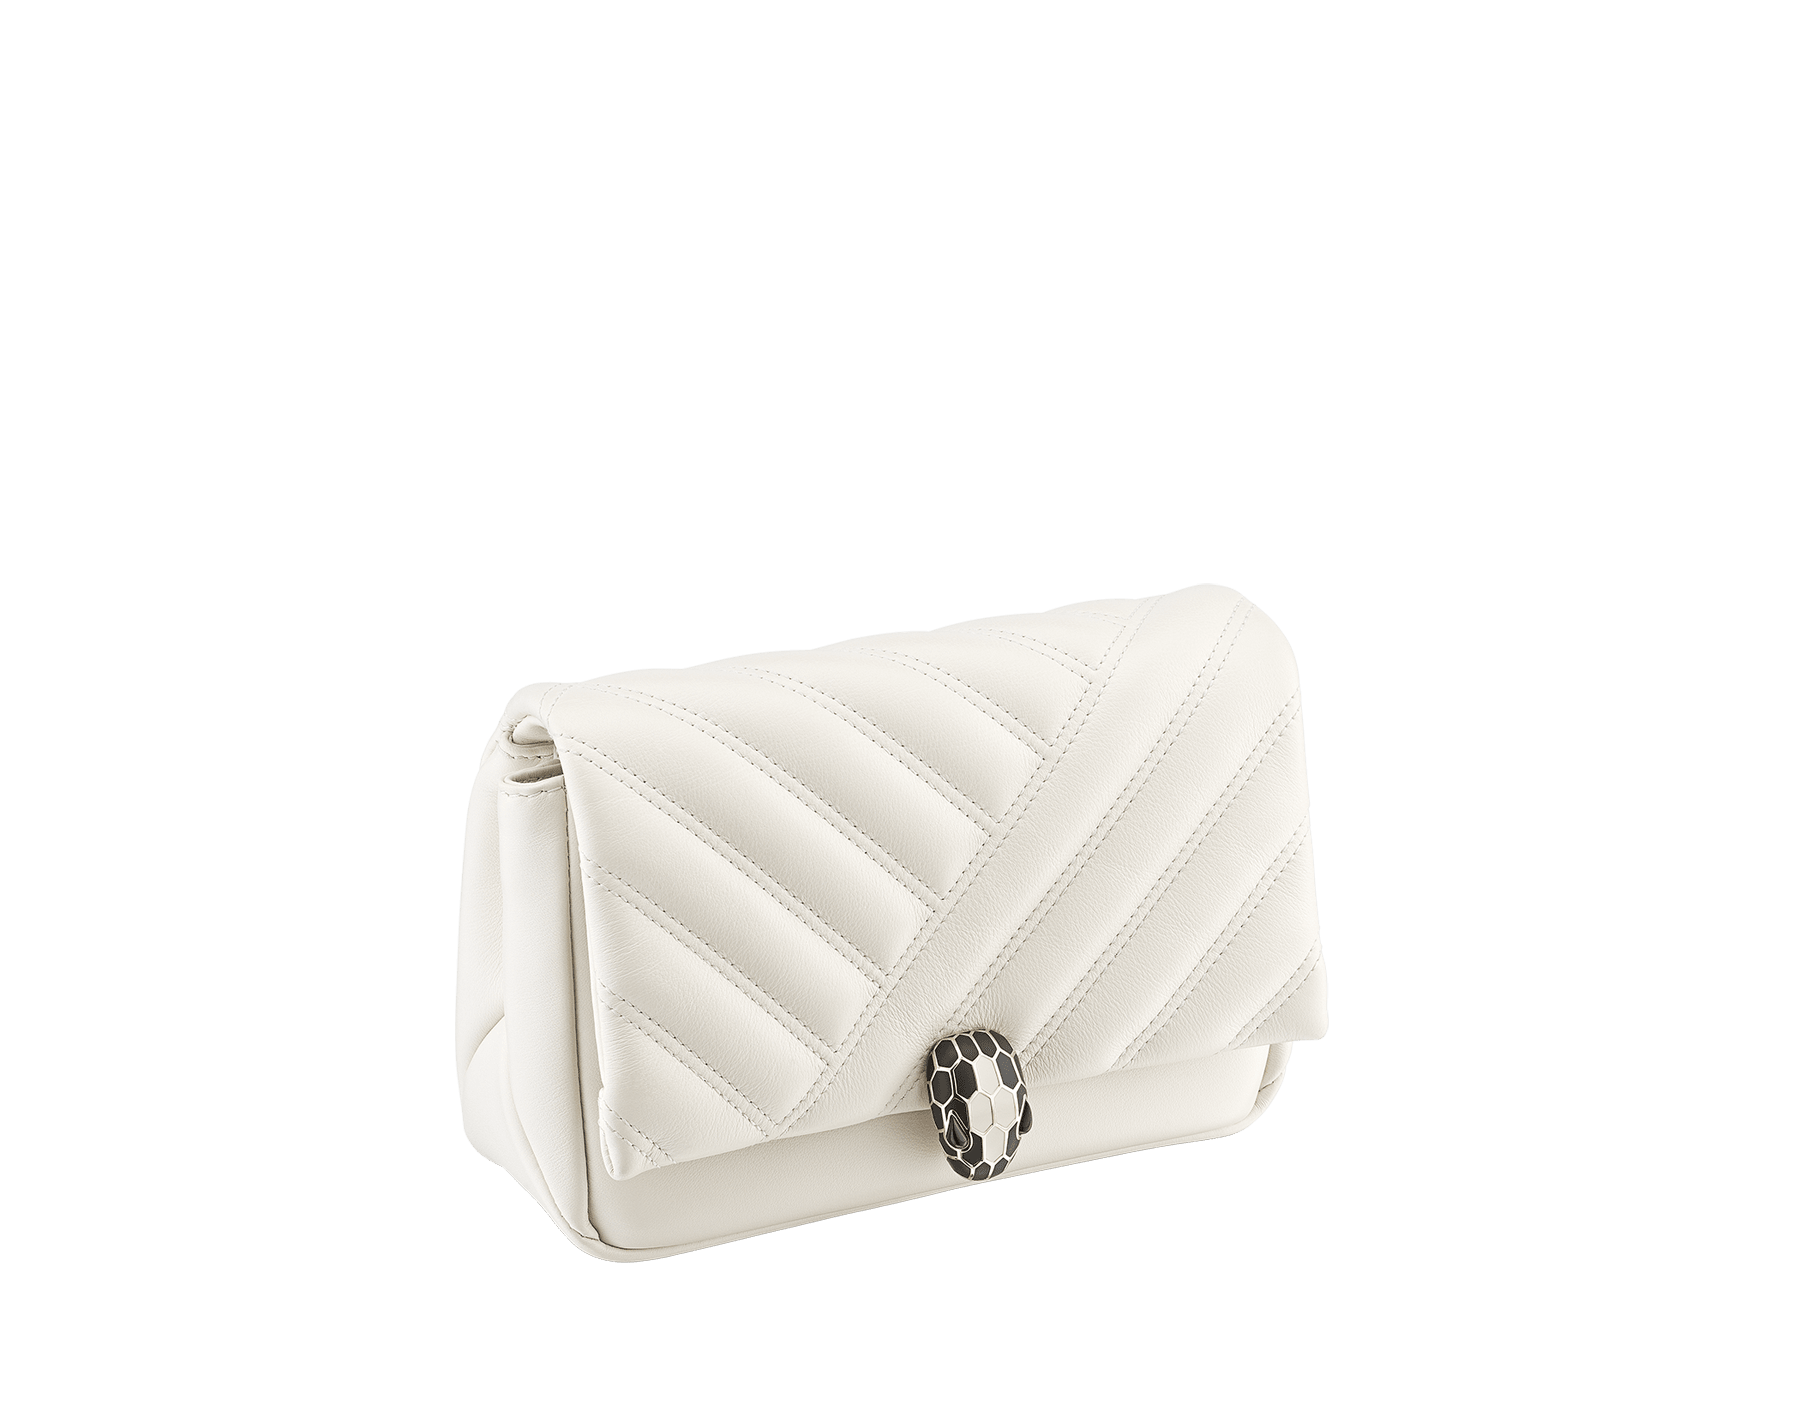 Serpenti Cabochon micro bag in soft matelassé white agate calf leather, with a graphic motif. Brass light gold plated tempting snake head closure in black and white agate enamel and black onyx eyes. 288760 image 2